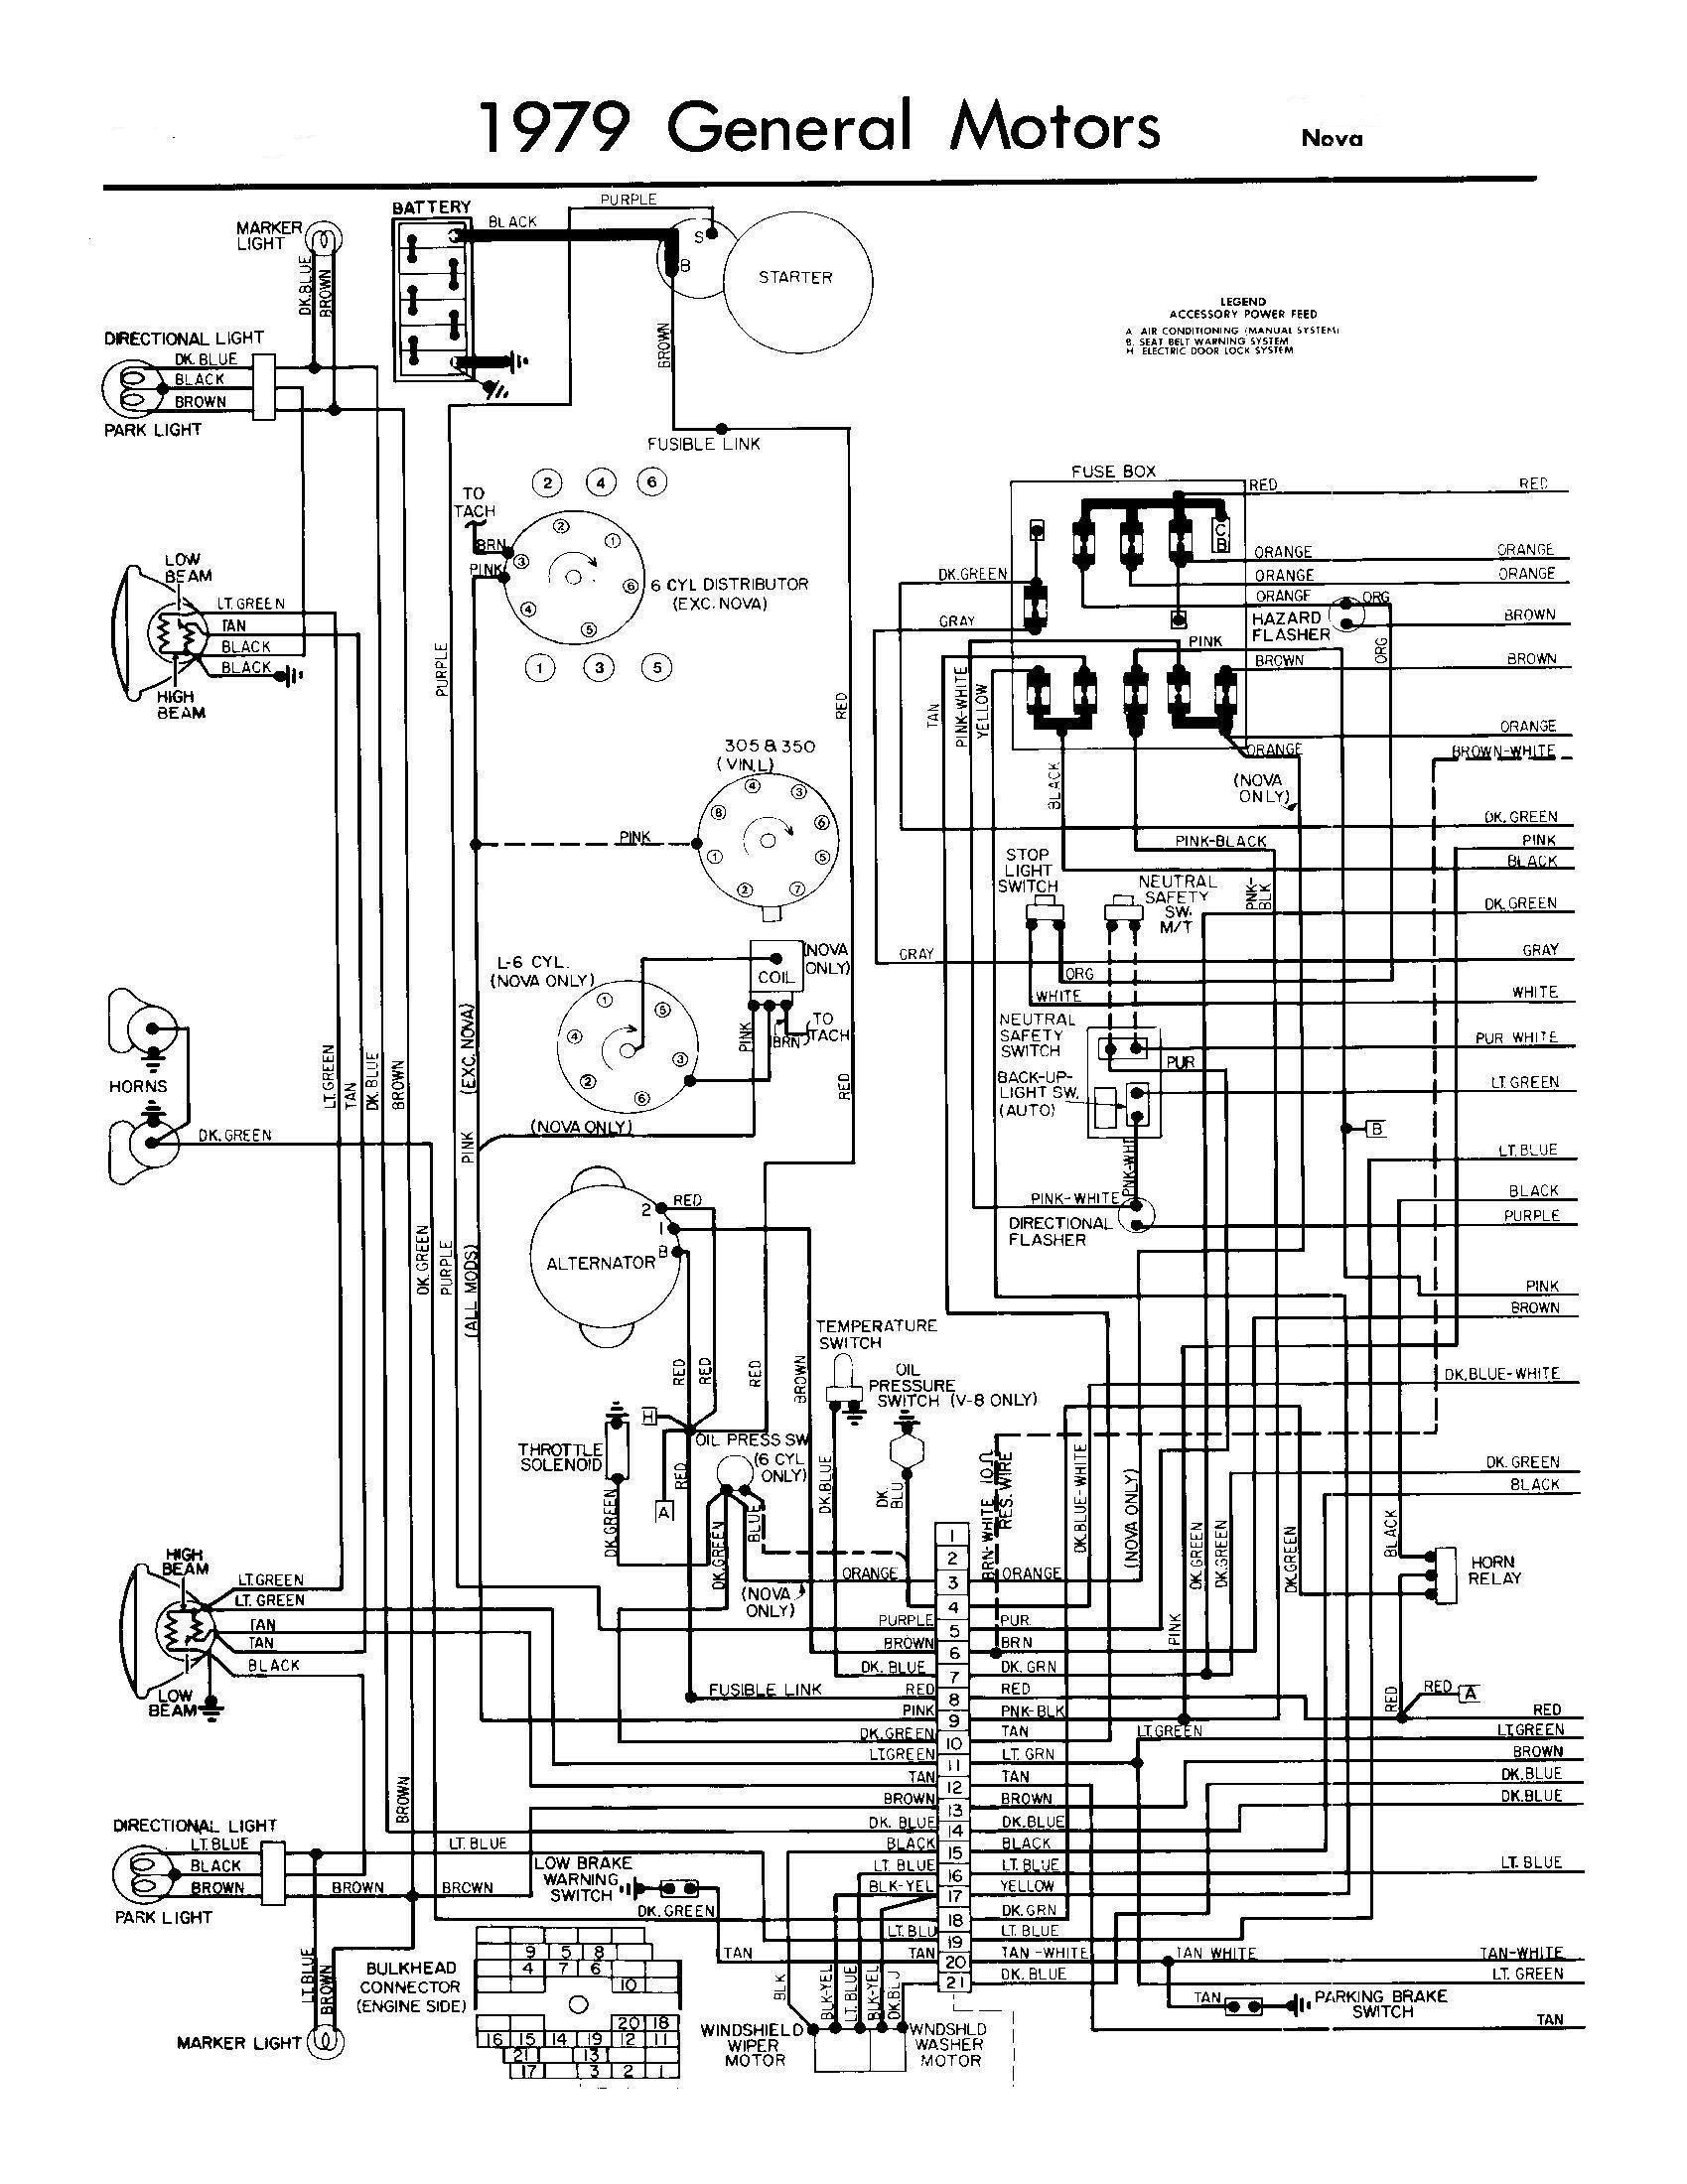 2005 Gmc Sierra Wiring Diagram All Generation Wiring Schematics Chevy Nova forum Of 2005 Gmc Sierra Wiring Diagram